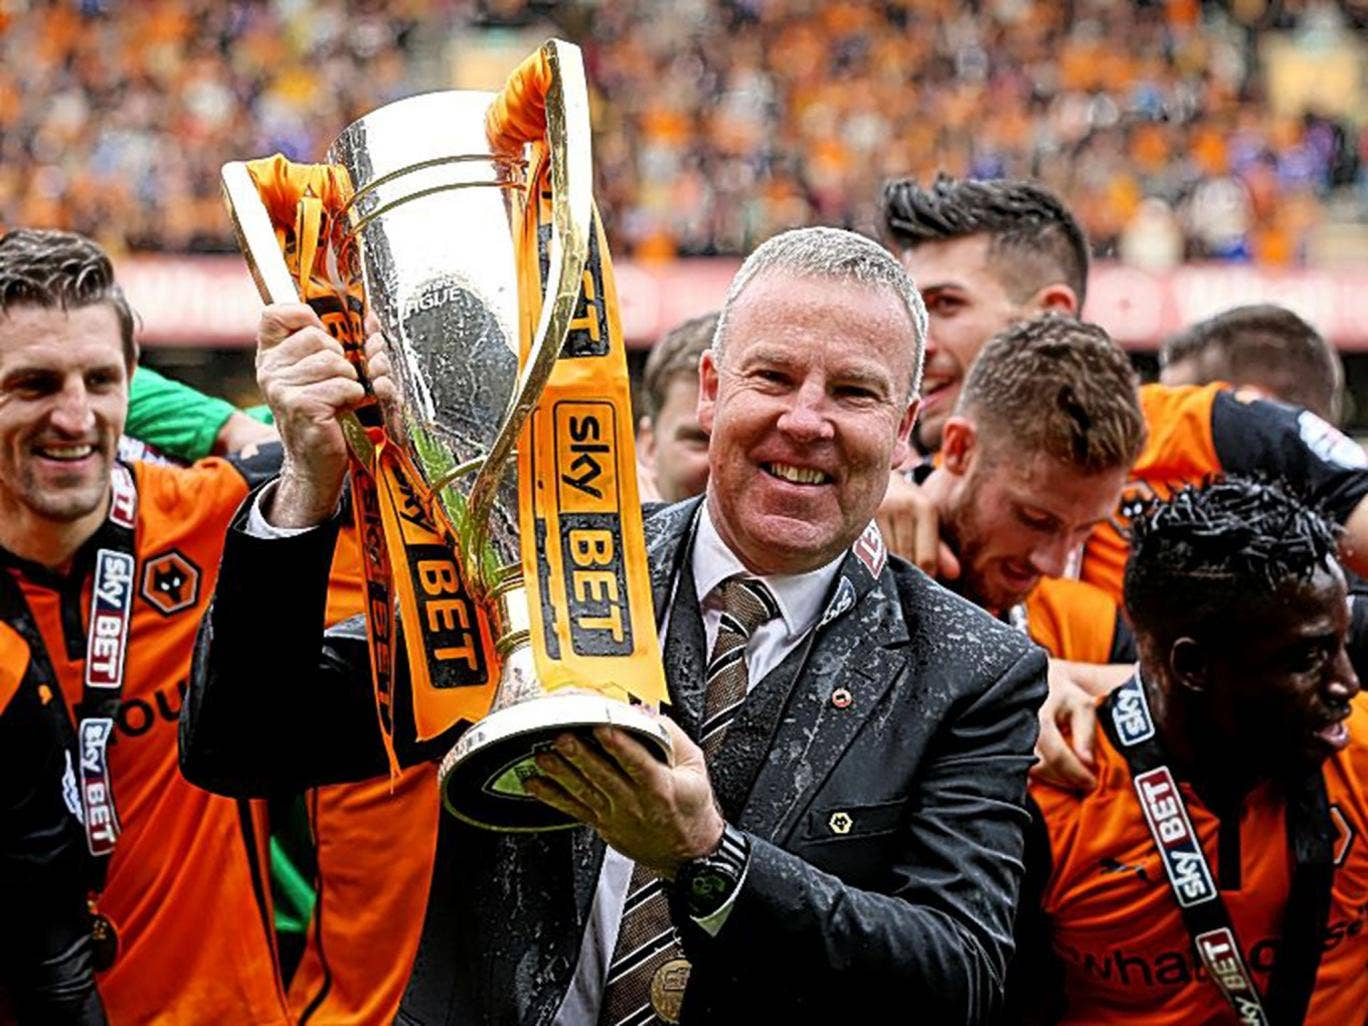 Kenny Jackett holds the League One trophy, won by Wolves with 103 points